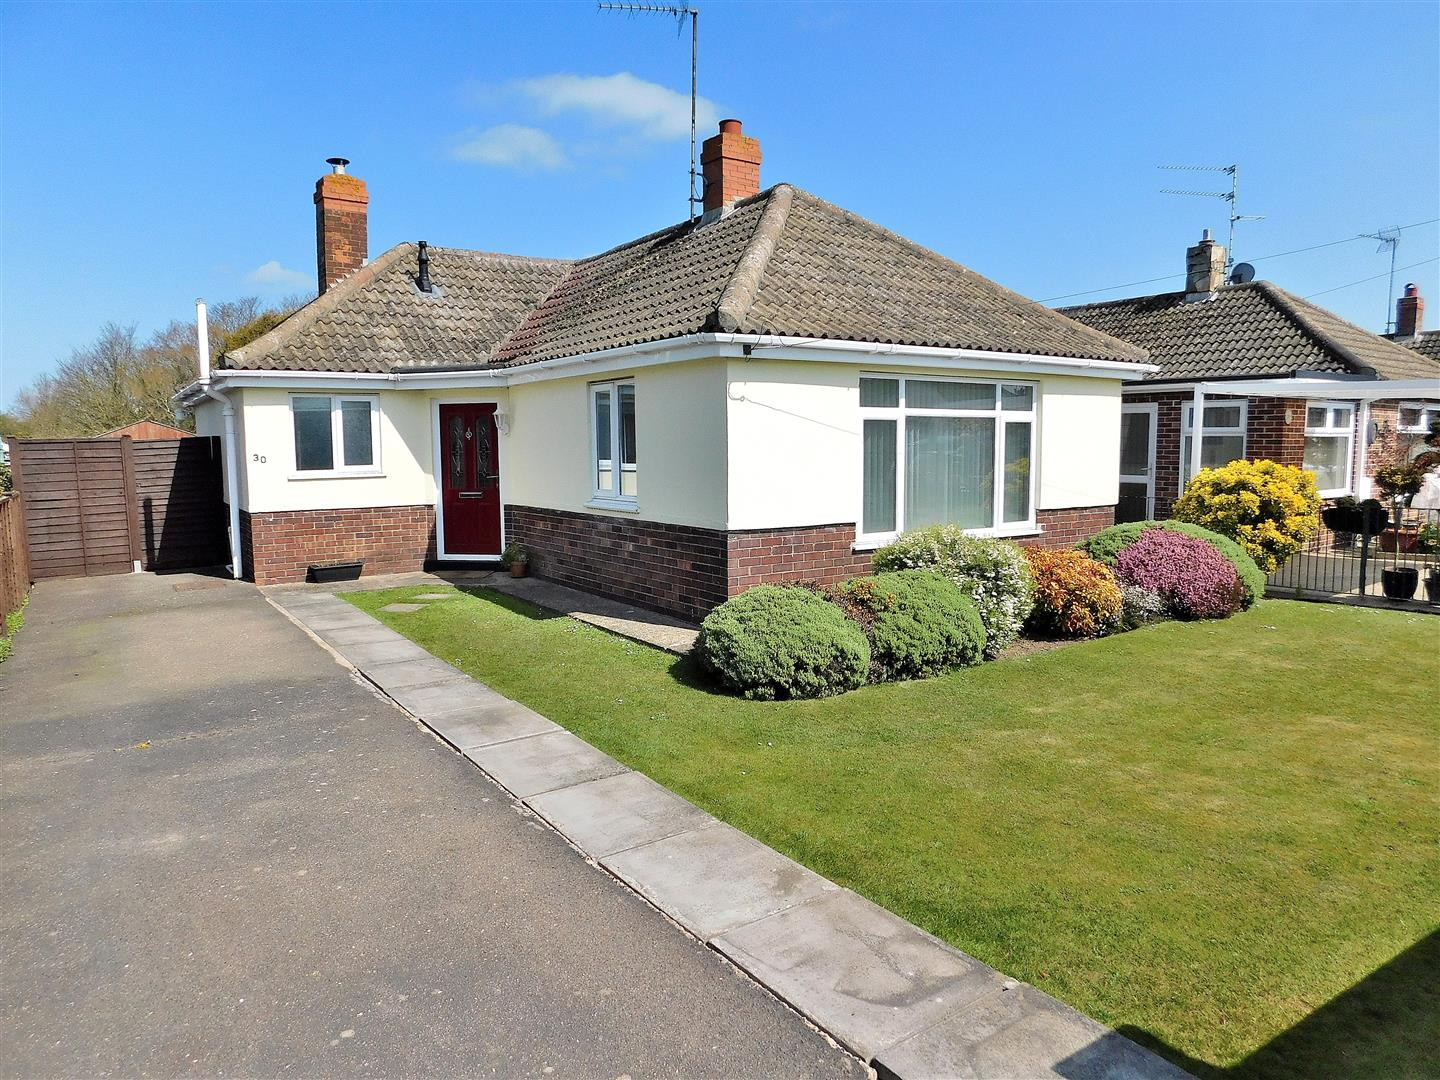 2 bed detached bungalow for sale in St. Peters Close, King's Lynn, PE34